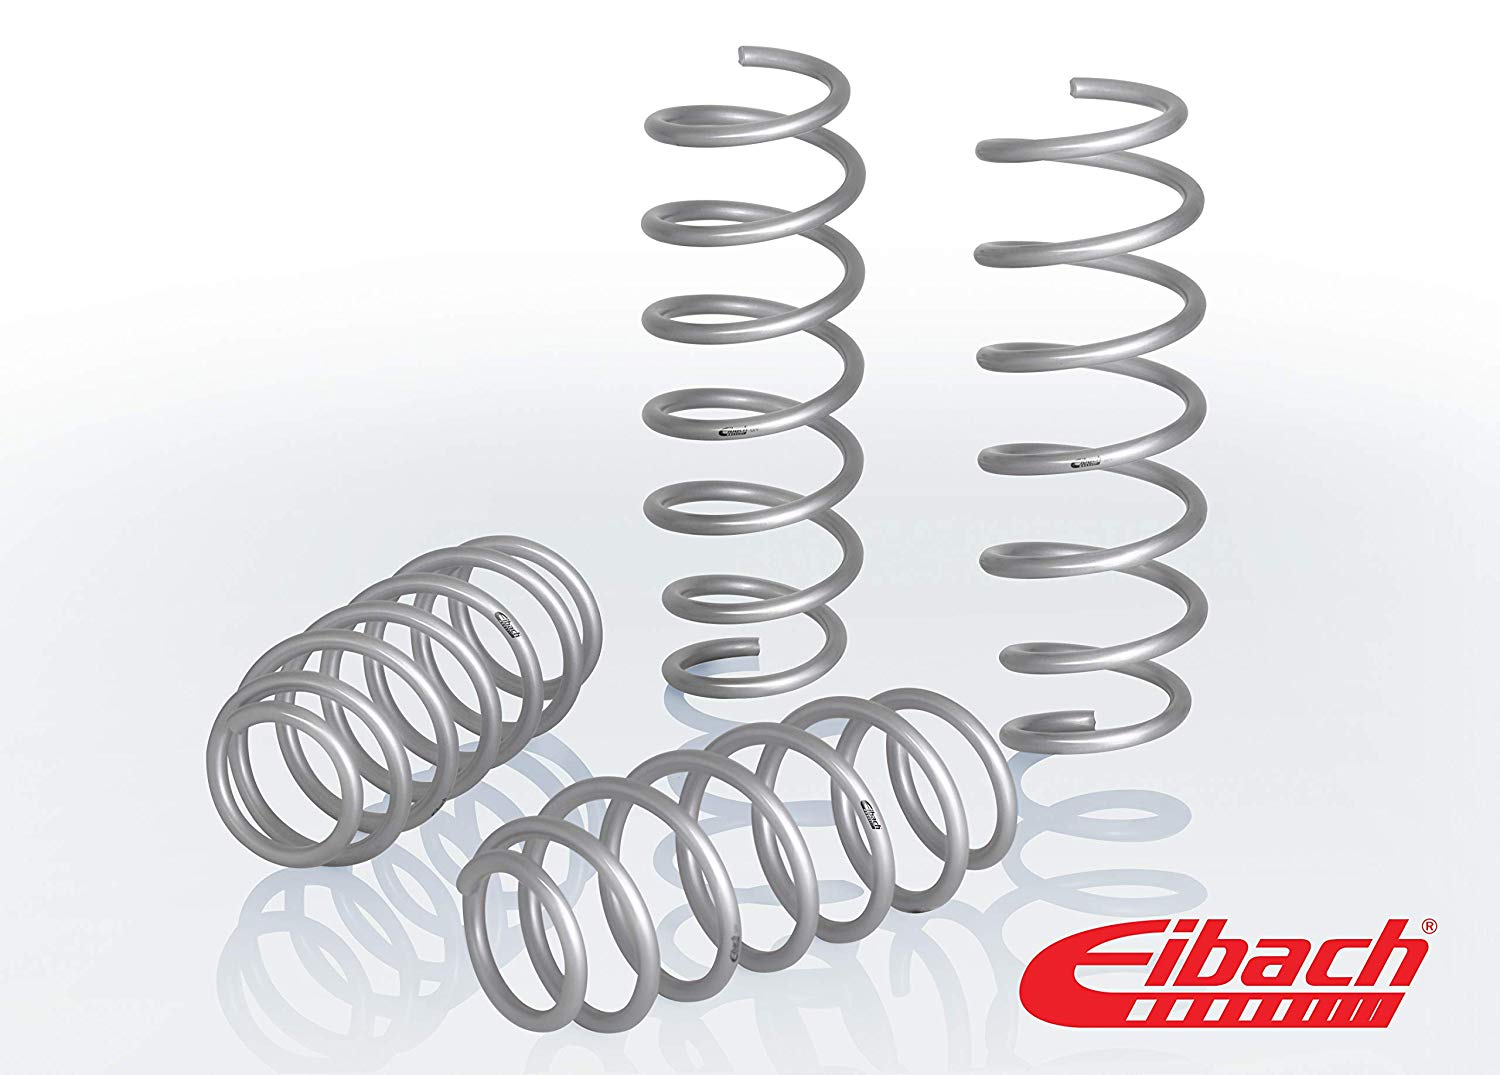 (18-20) Crosstrek - Eibach Lift Springs (Fronts & Rears)